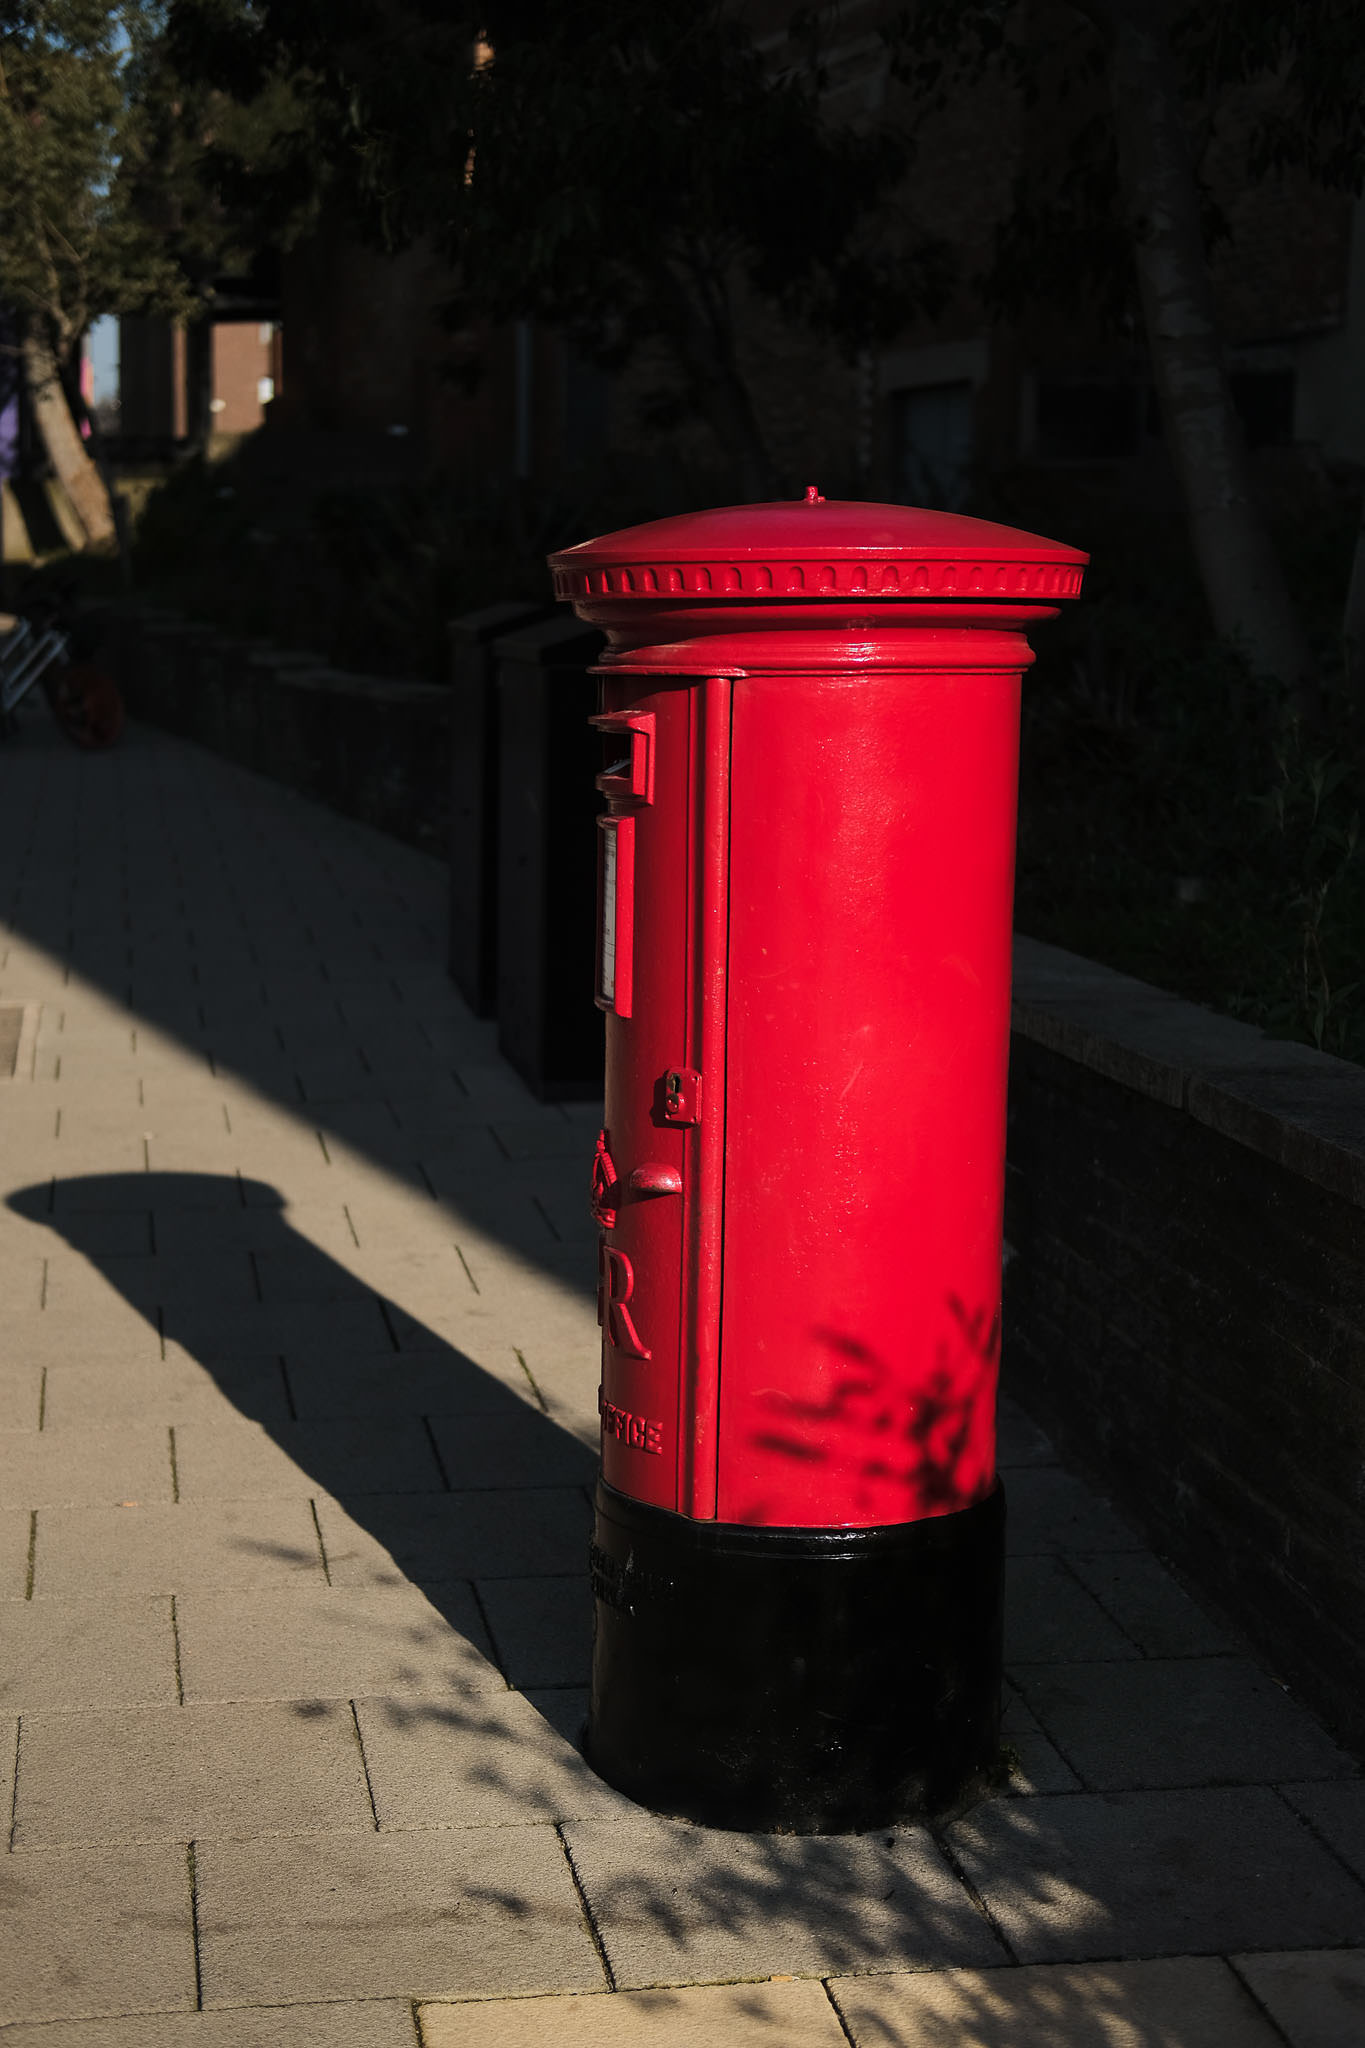 Vibrant red post box casts deep dark shadow